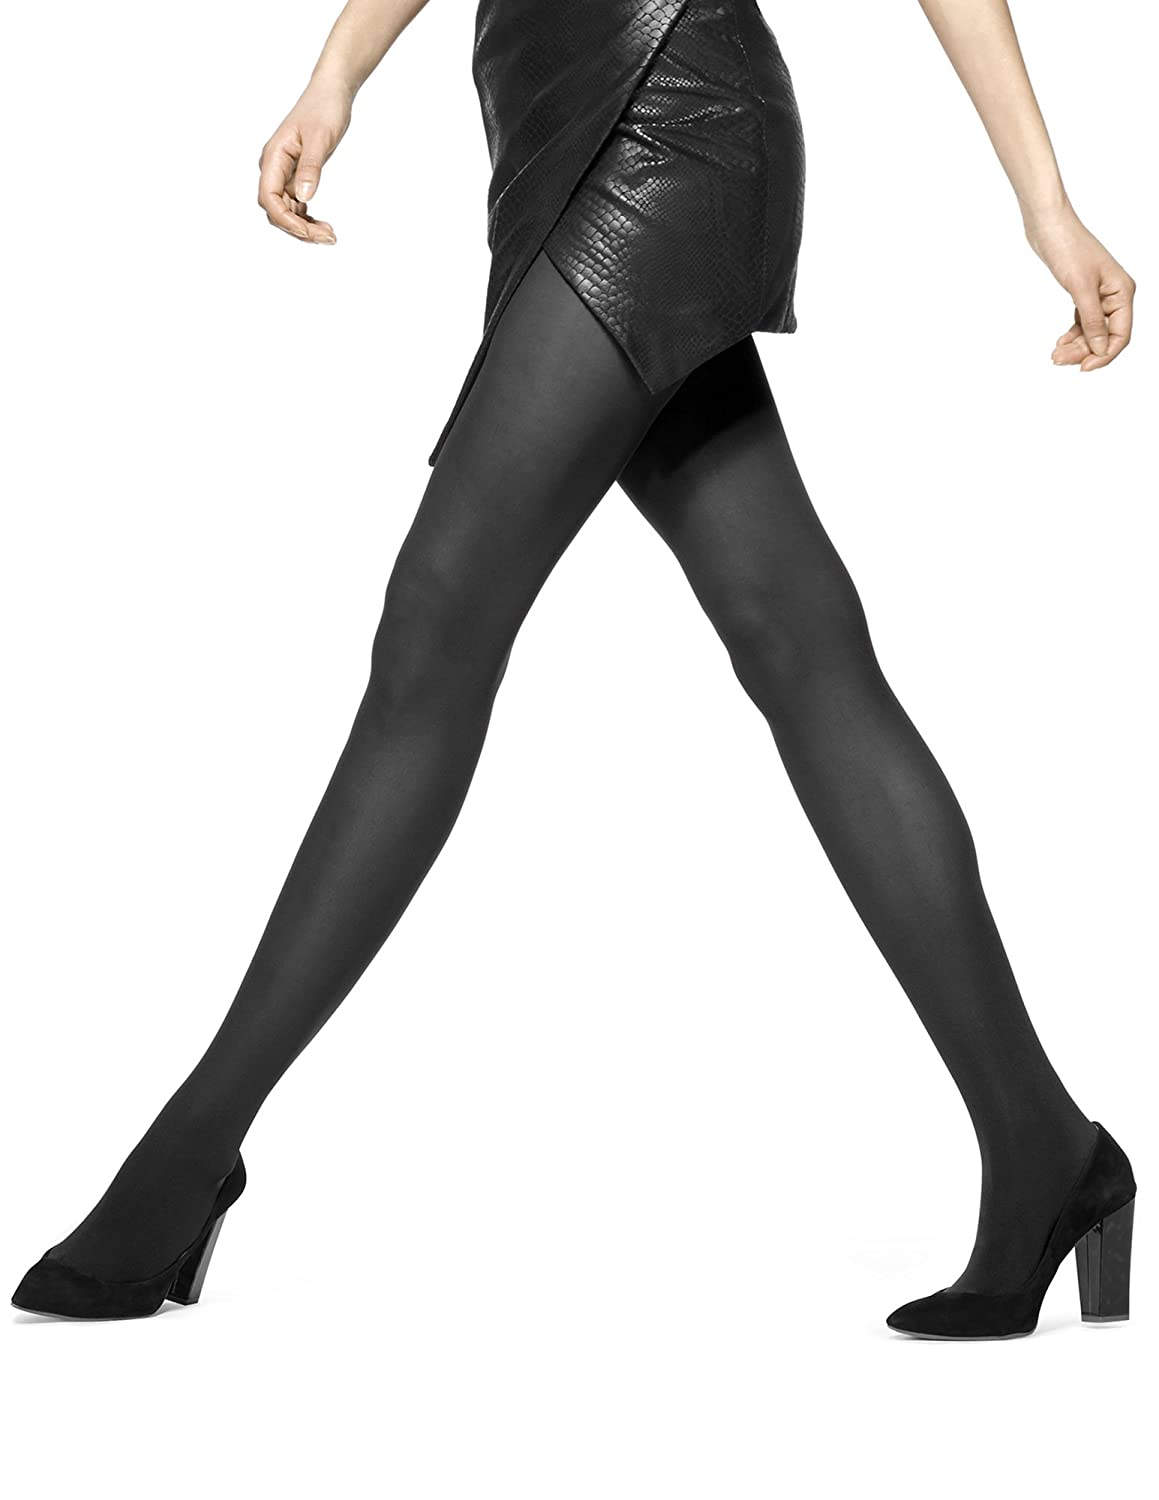 3d3ca70b0 HUE Women s Opaque Control Top Tight at Amazon Women s Clothing store   Tights For Women Control Top